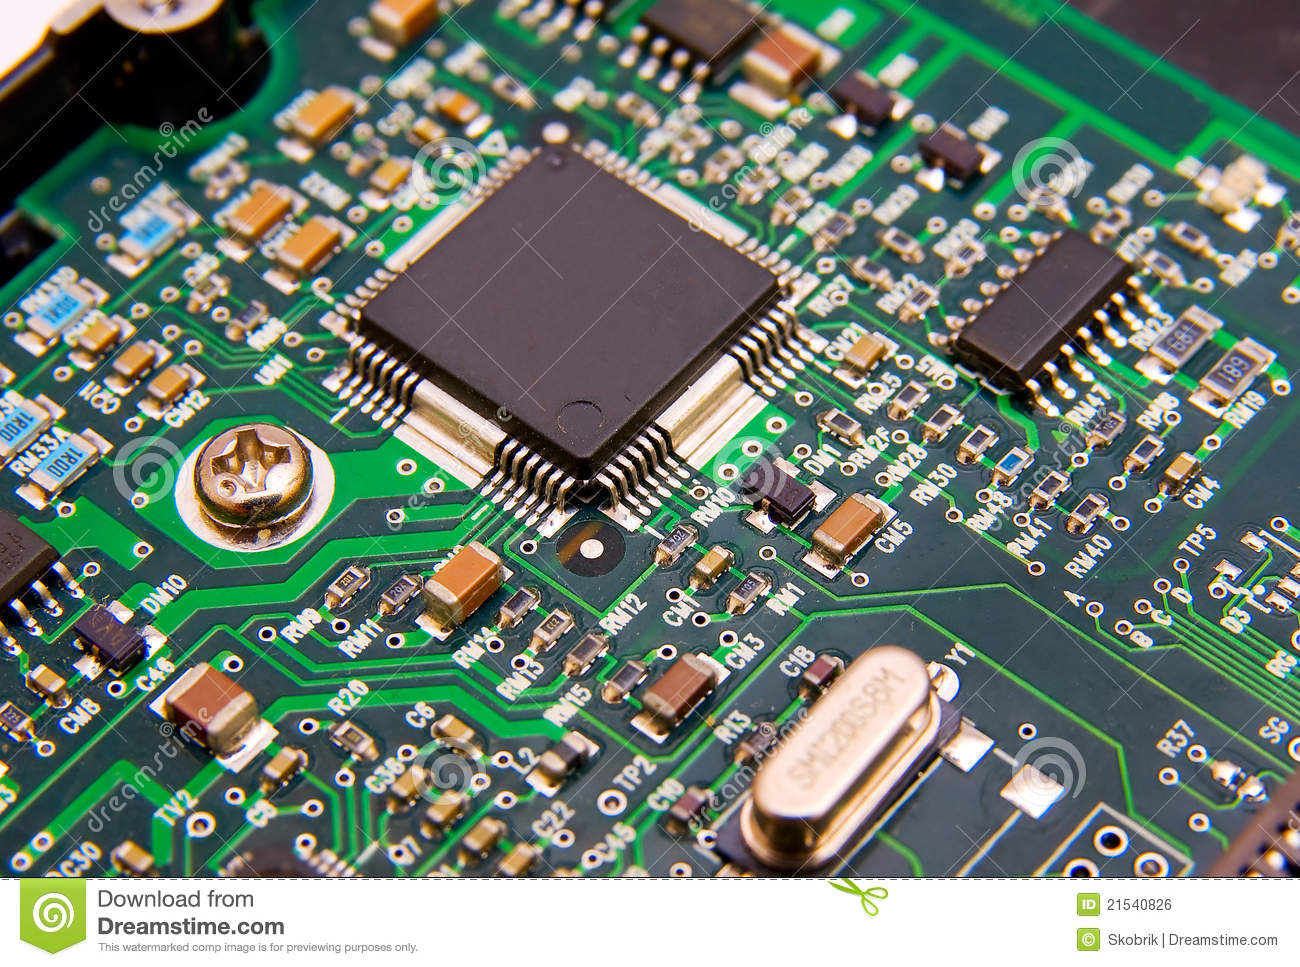 About Electronic Circuit Board Wiring Diagrams How To Make An Electrical Ehow Uk Stock Photo Image Of Microchip 21540826 Rh Dreamstime Com Kits